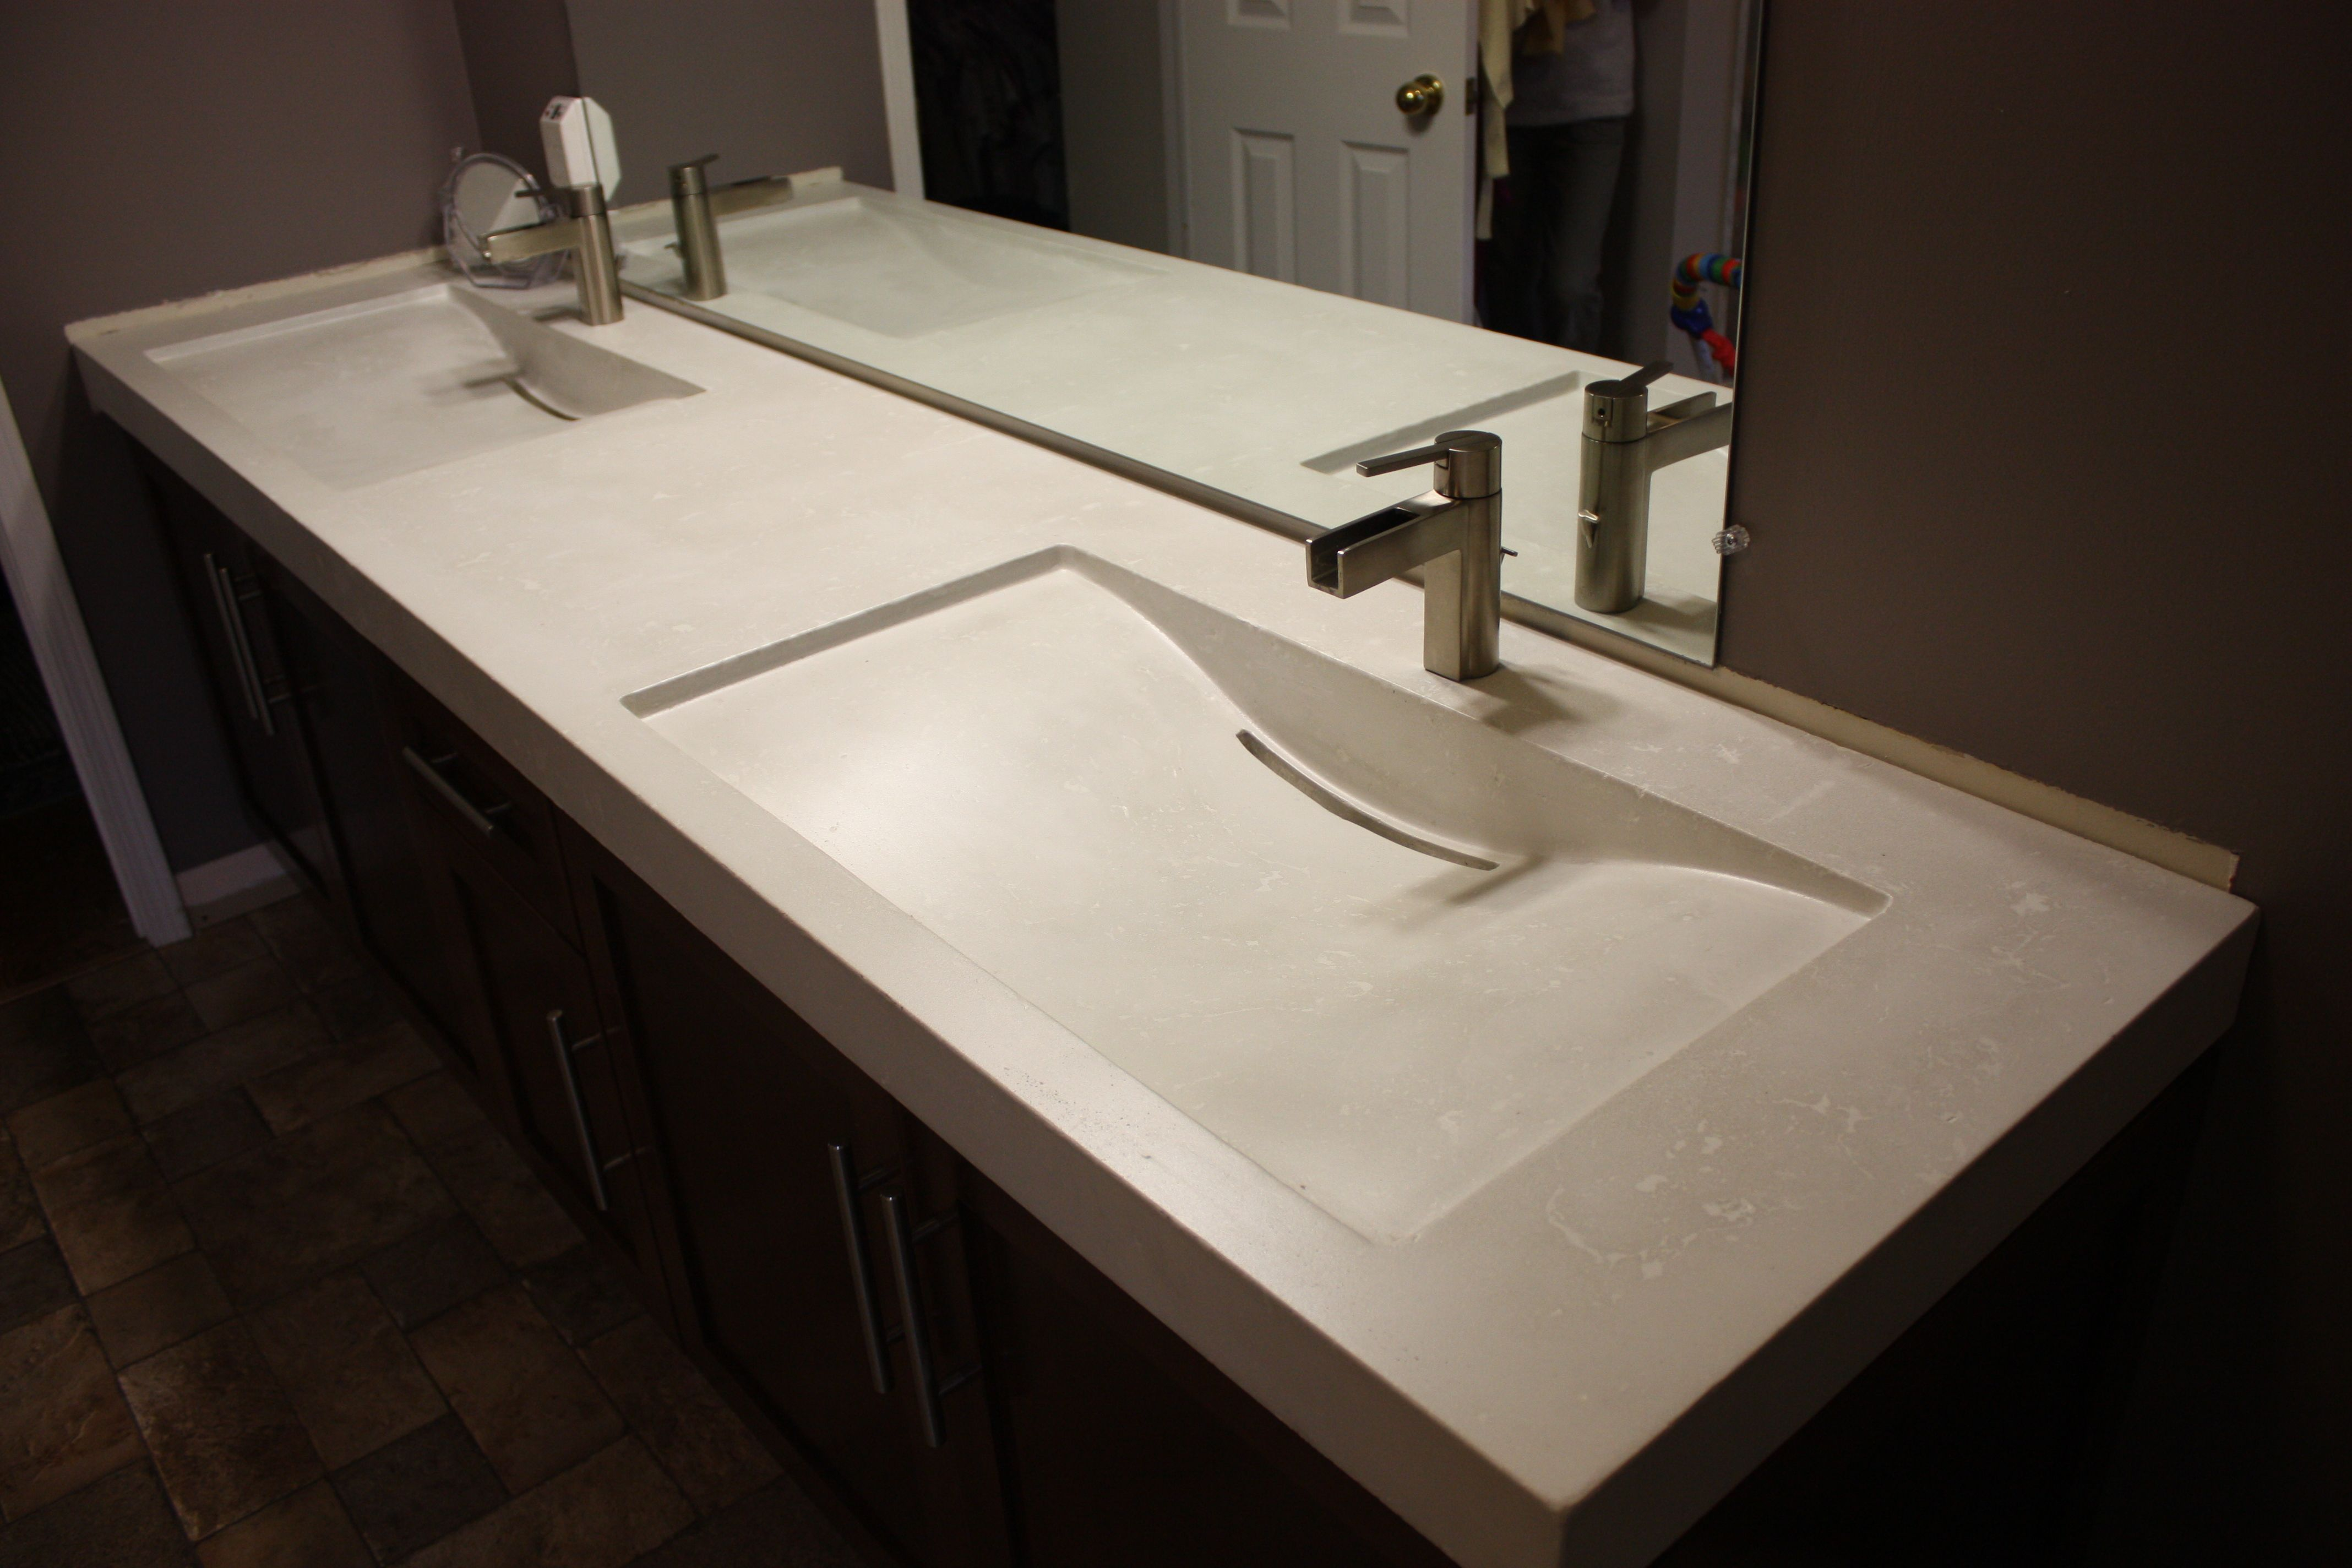 17 Best images about Double Sink Vanity Tops by everGreen on Pinterest   To  be  Custom boxes and Places. 17 Best images about Double Sink Vanity Tops by everGreen on